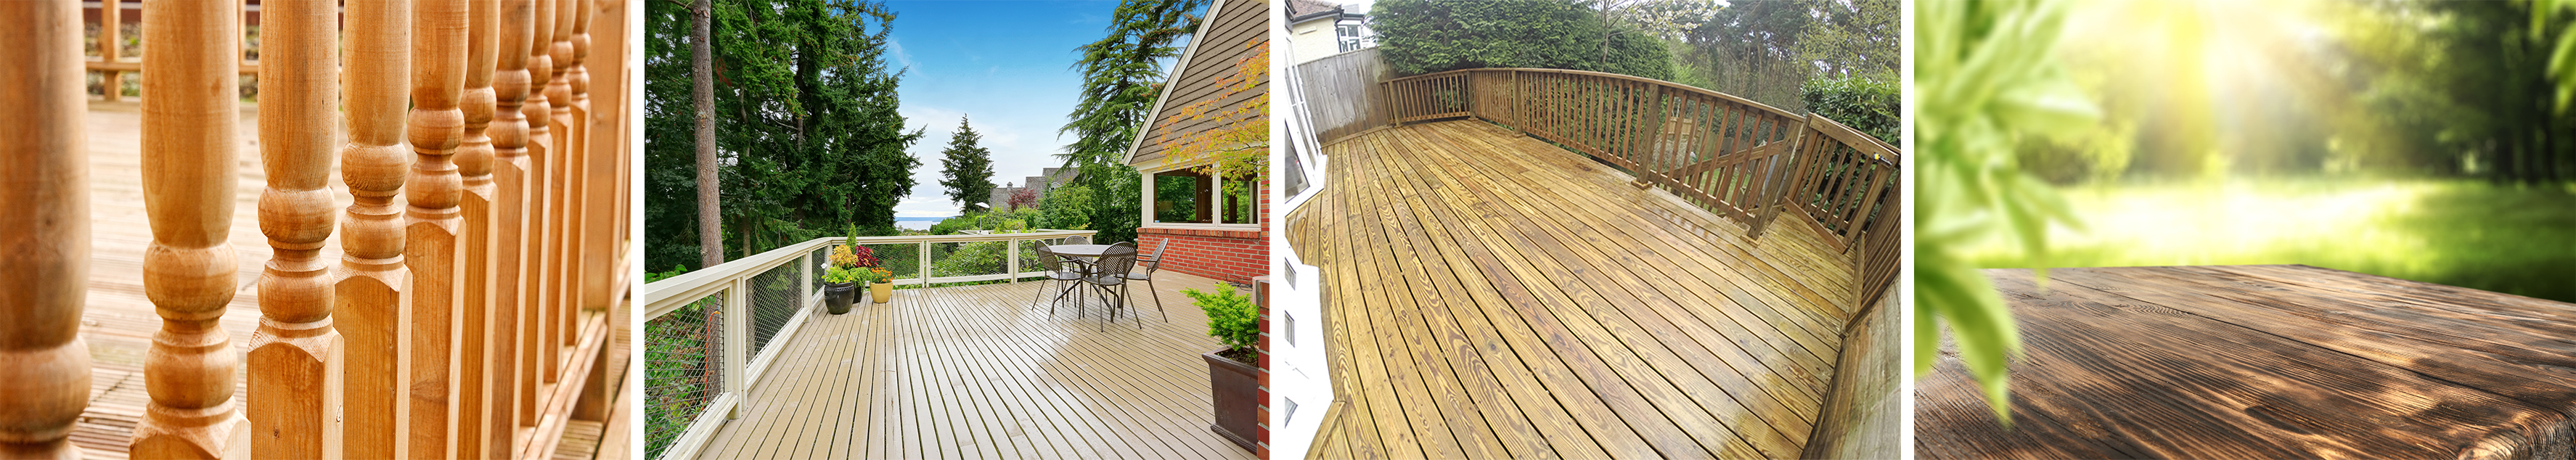 Decking Cleaning Services in Corfe Mullen, Dorset